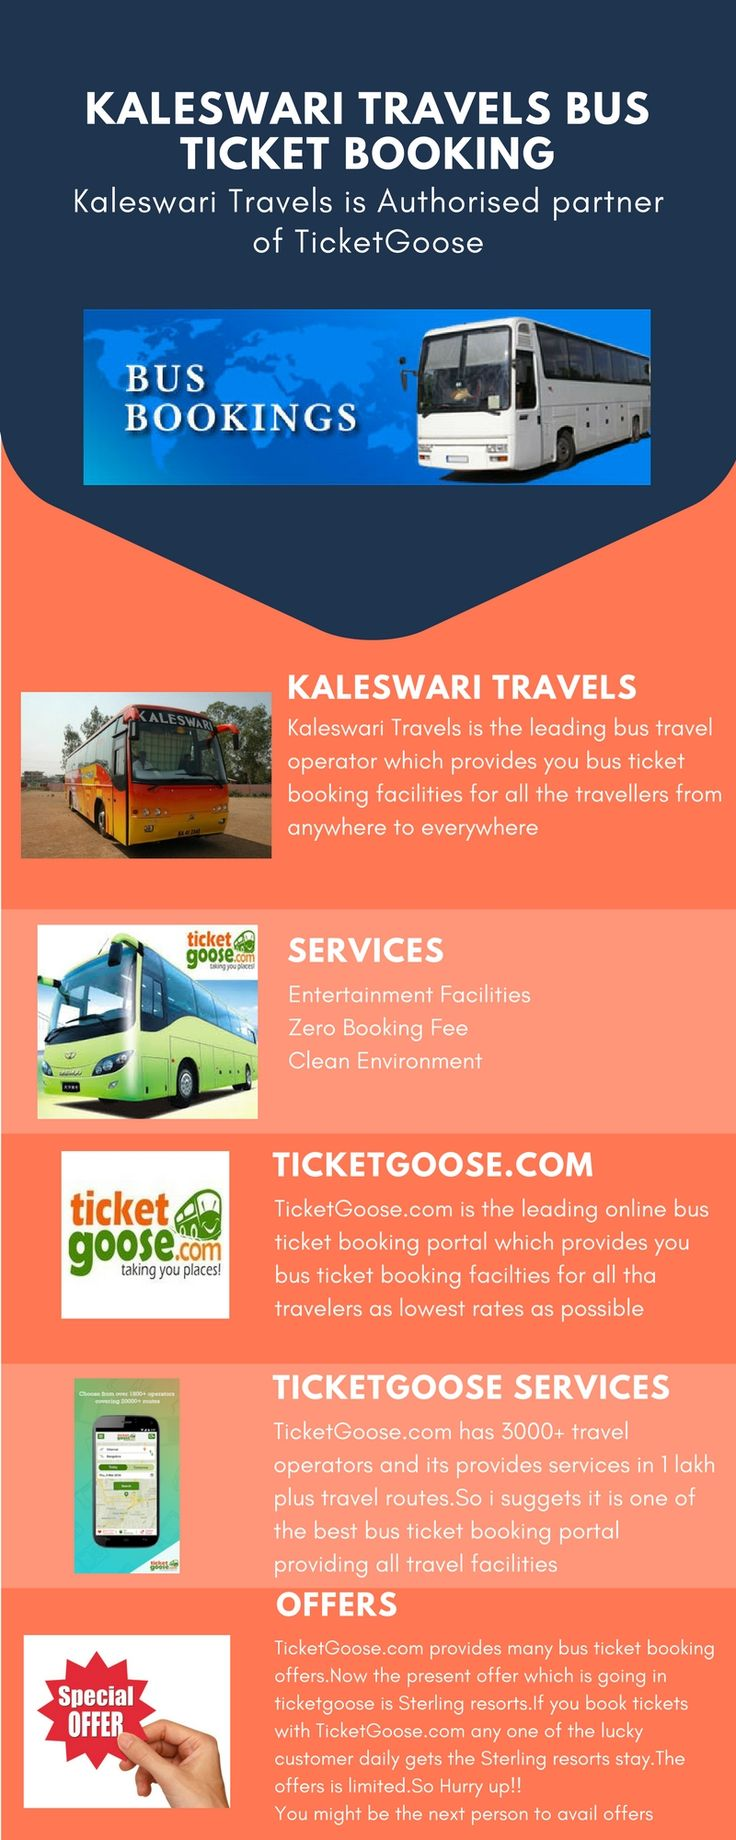 Kaleswari Travels provides you the safe and comfortable journey with best facilities. Book tickets through ticket goose and get discount  on booking  http://www.ticketgoose.com/sree-kaleswari-travels